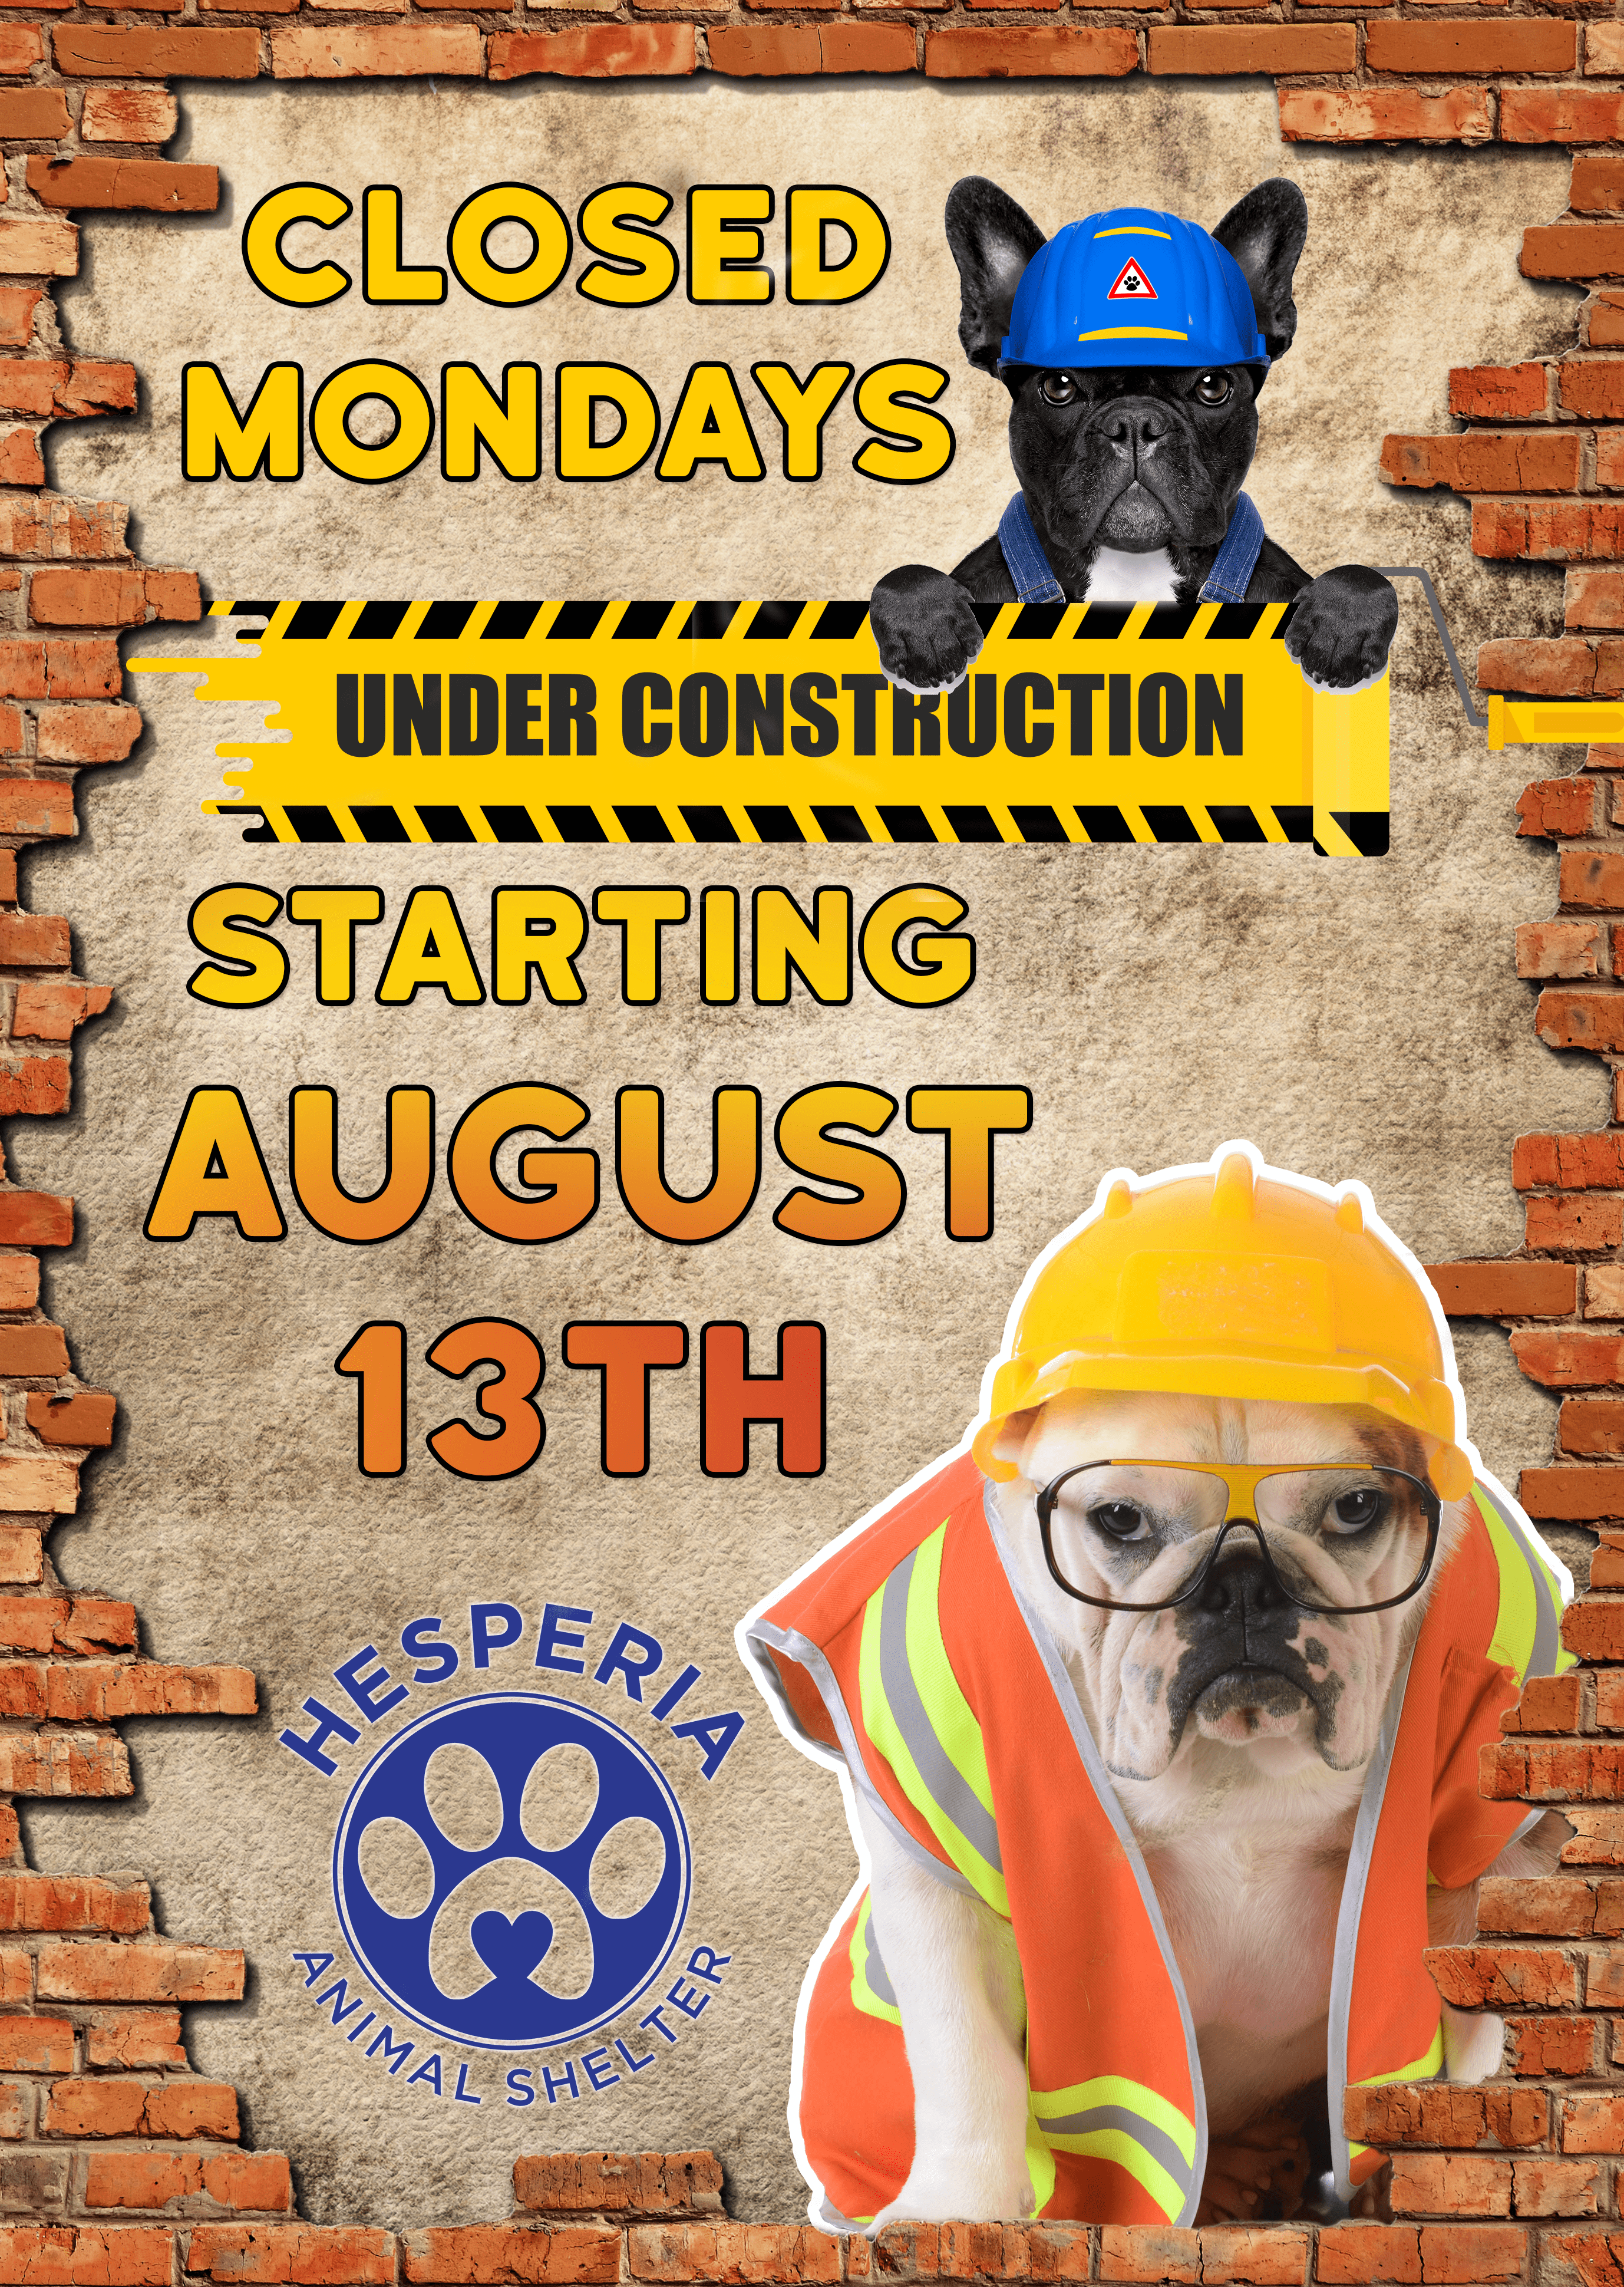 Animal-Shelter-Construction-Flyer